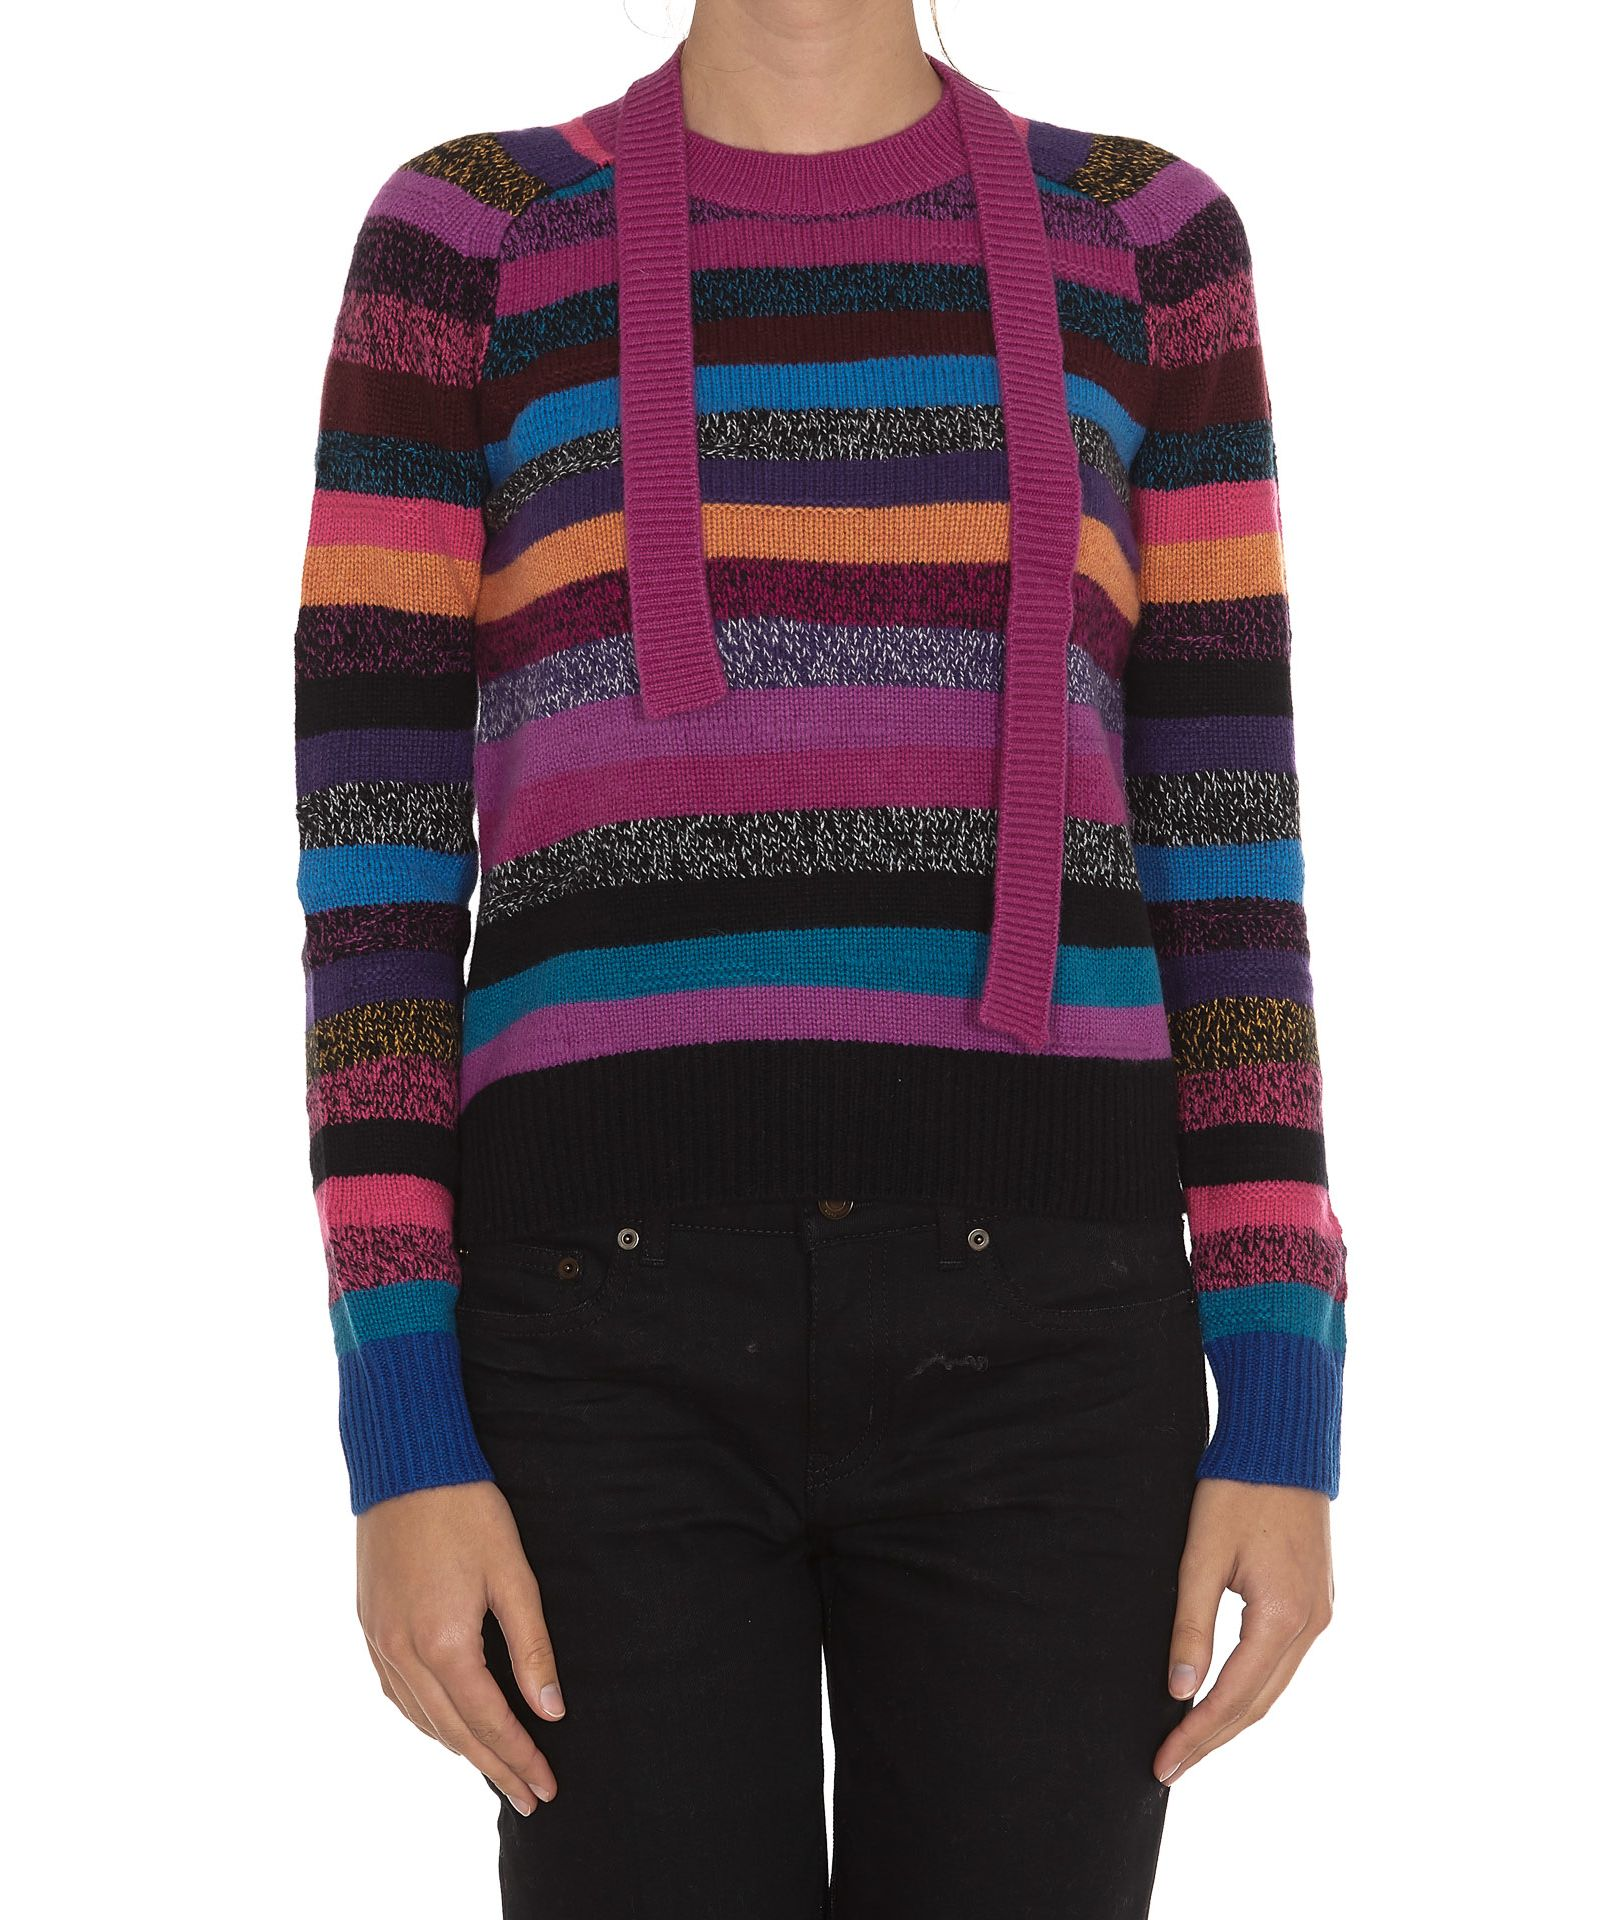 Crewneck Long-Sleeve Multicolor Striped Cashmere Sweater in Pink from MARC JACOBS